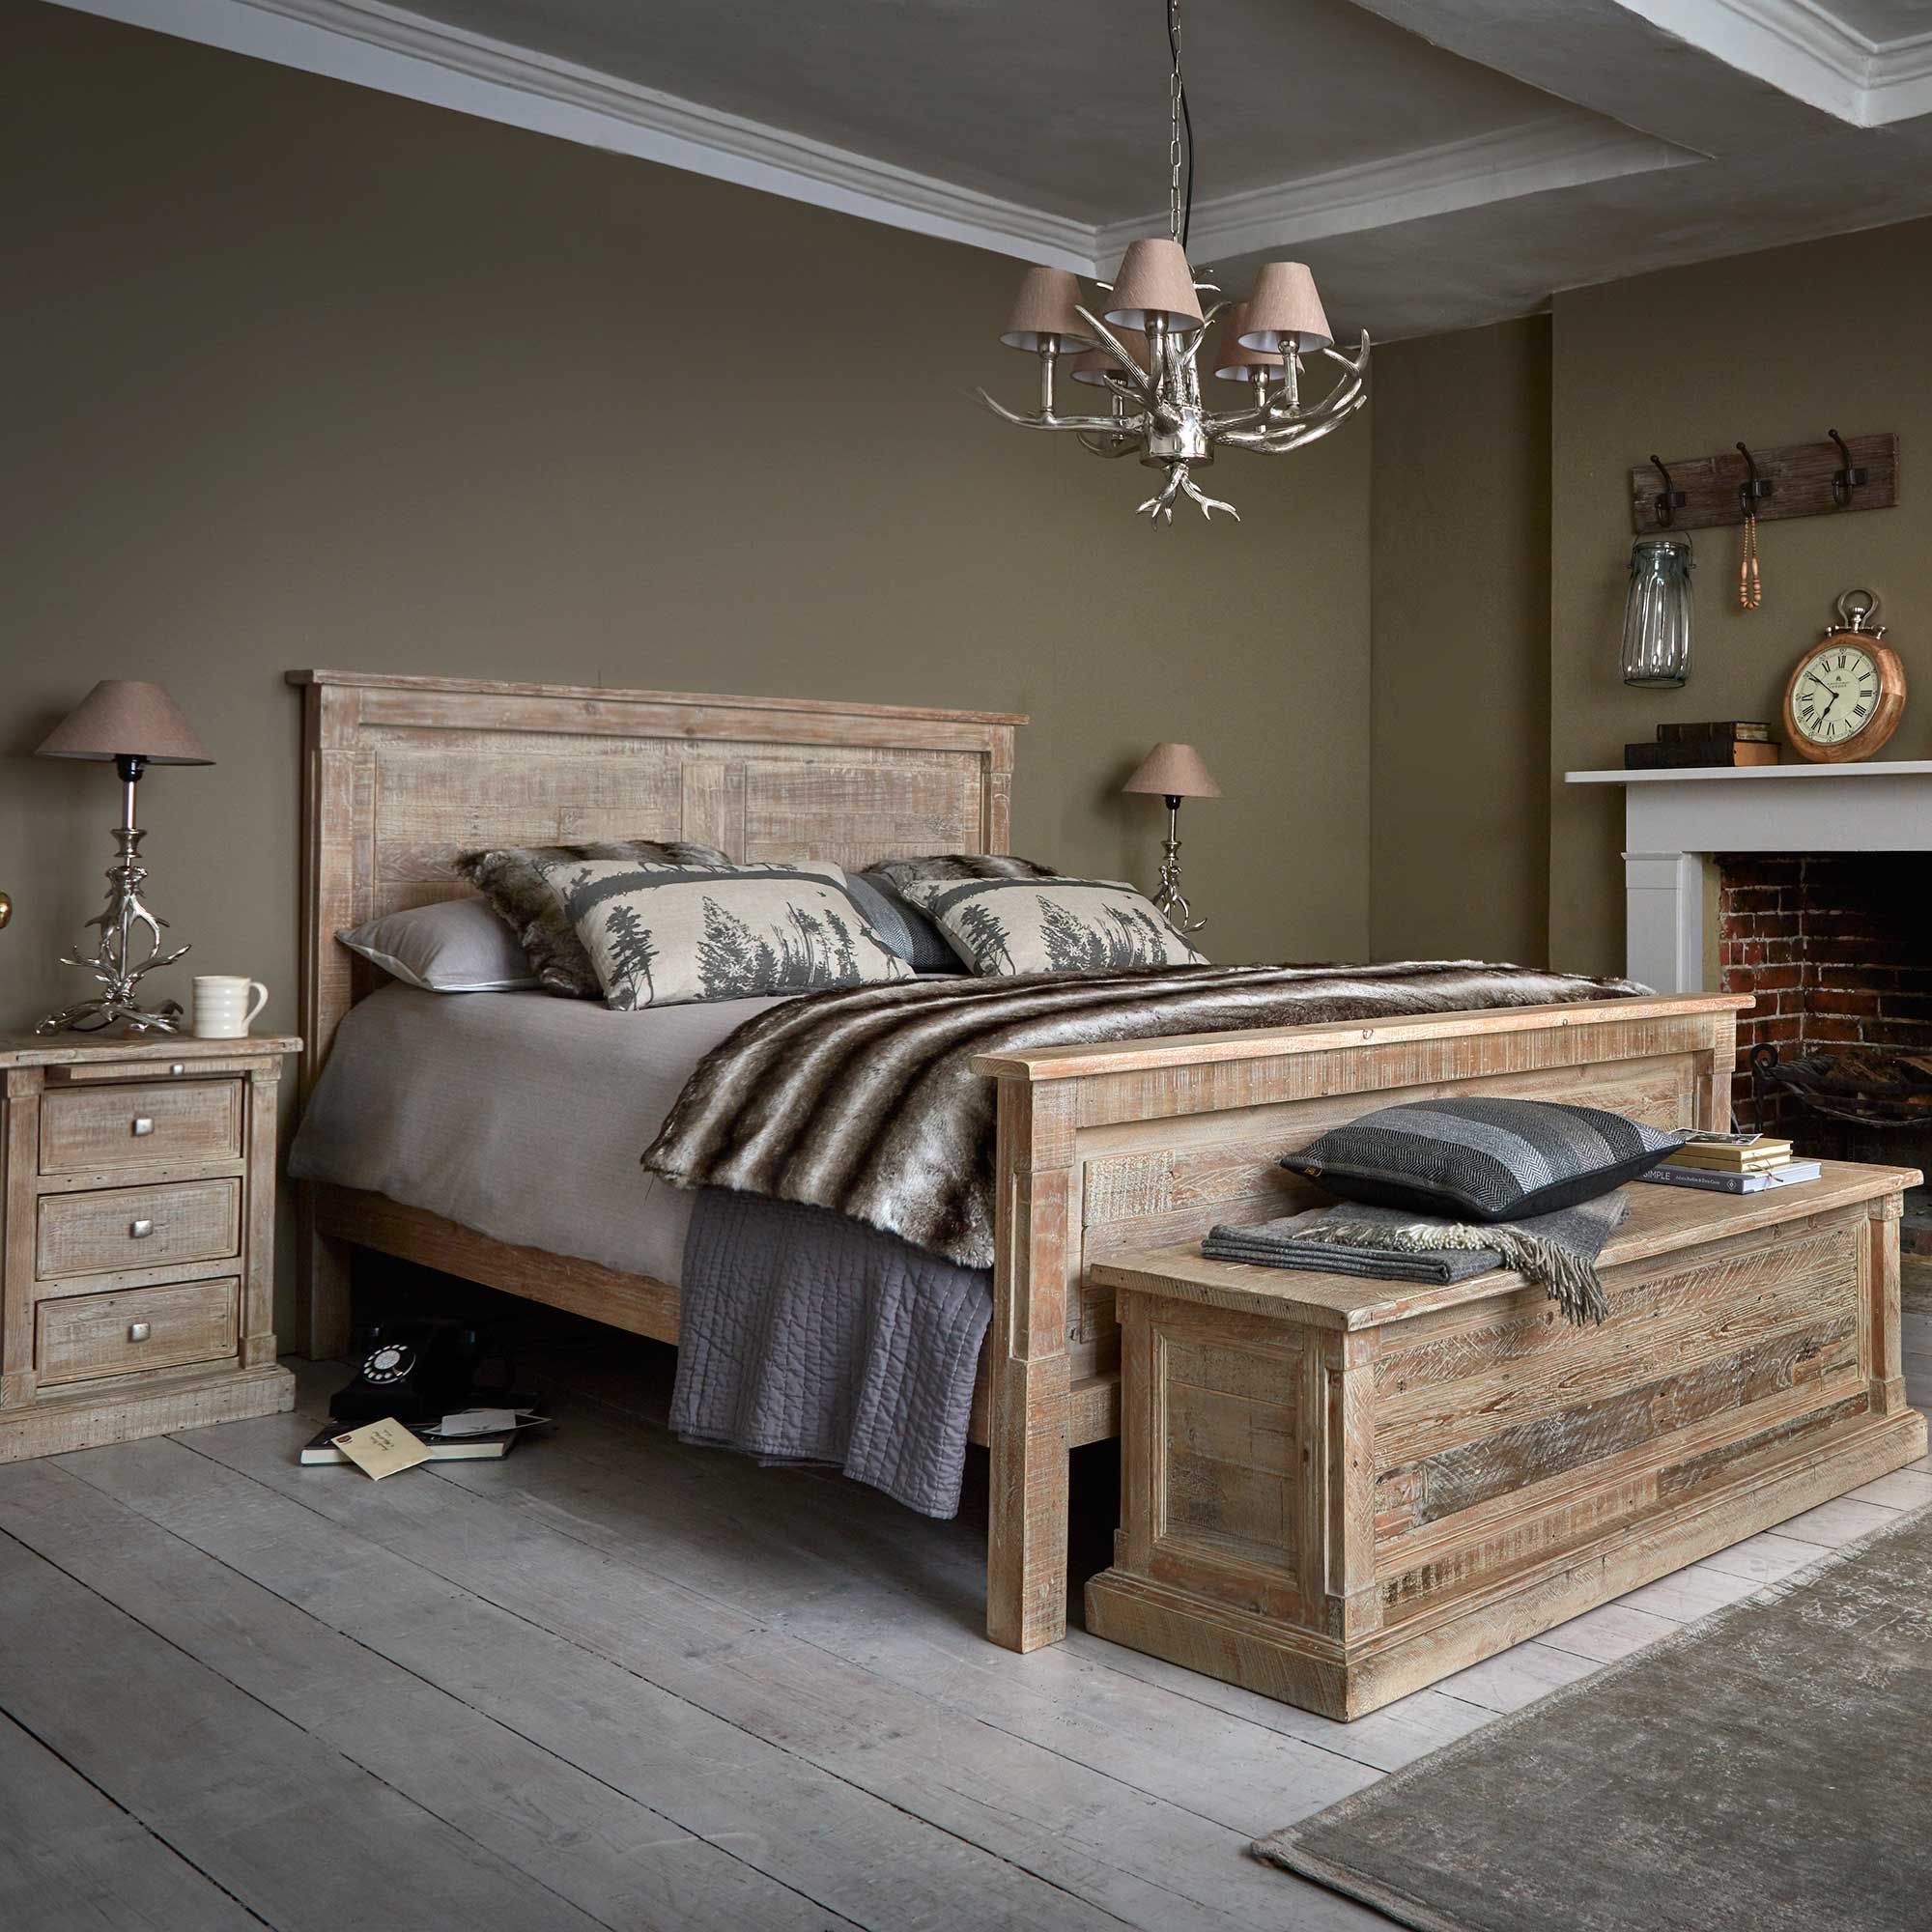 The Austen Bed Frame Is Made From Reclaimed Wood With A Classic Whitewashed  Finish.